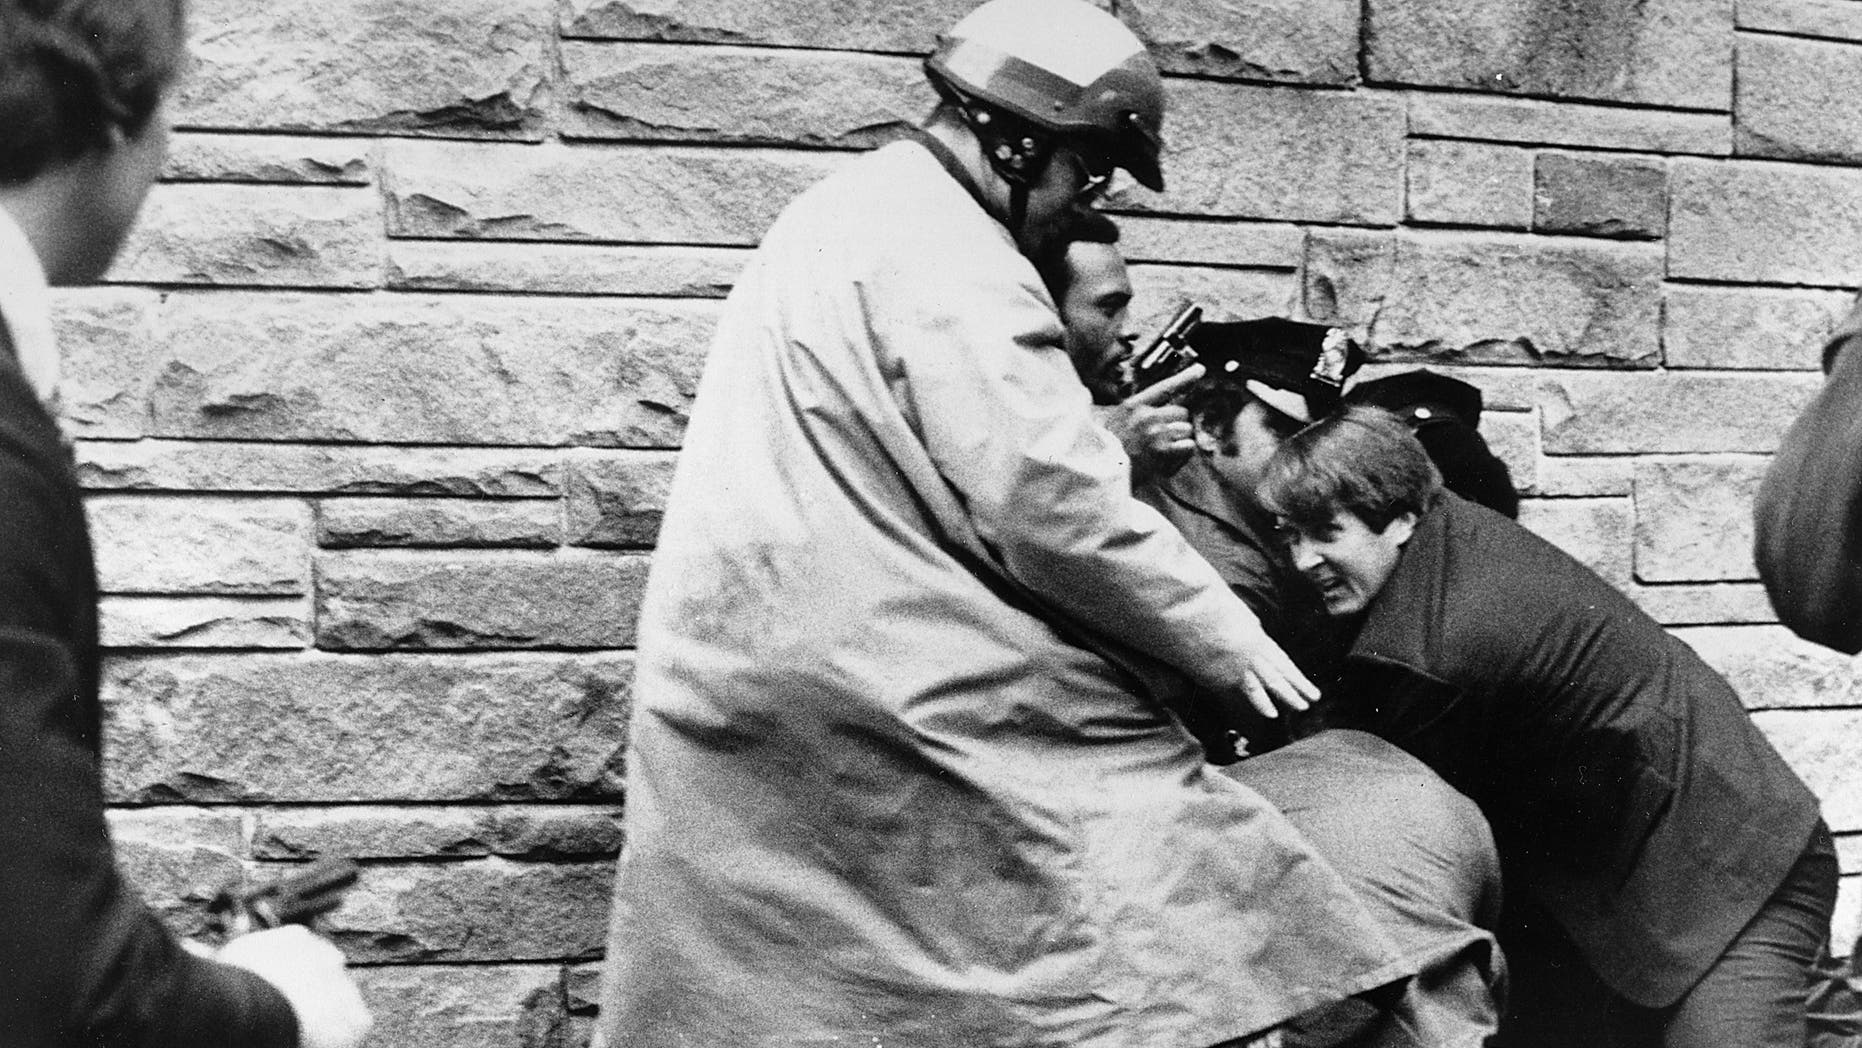 In this March 30, 1981, file photo, White House press secretary James Brady lies wounded on the sidewalk outside a Washington hotel after being shot during an assassination attempt on U.S. President Ronald Reagan, Monday, March 30, 1981.